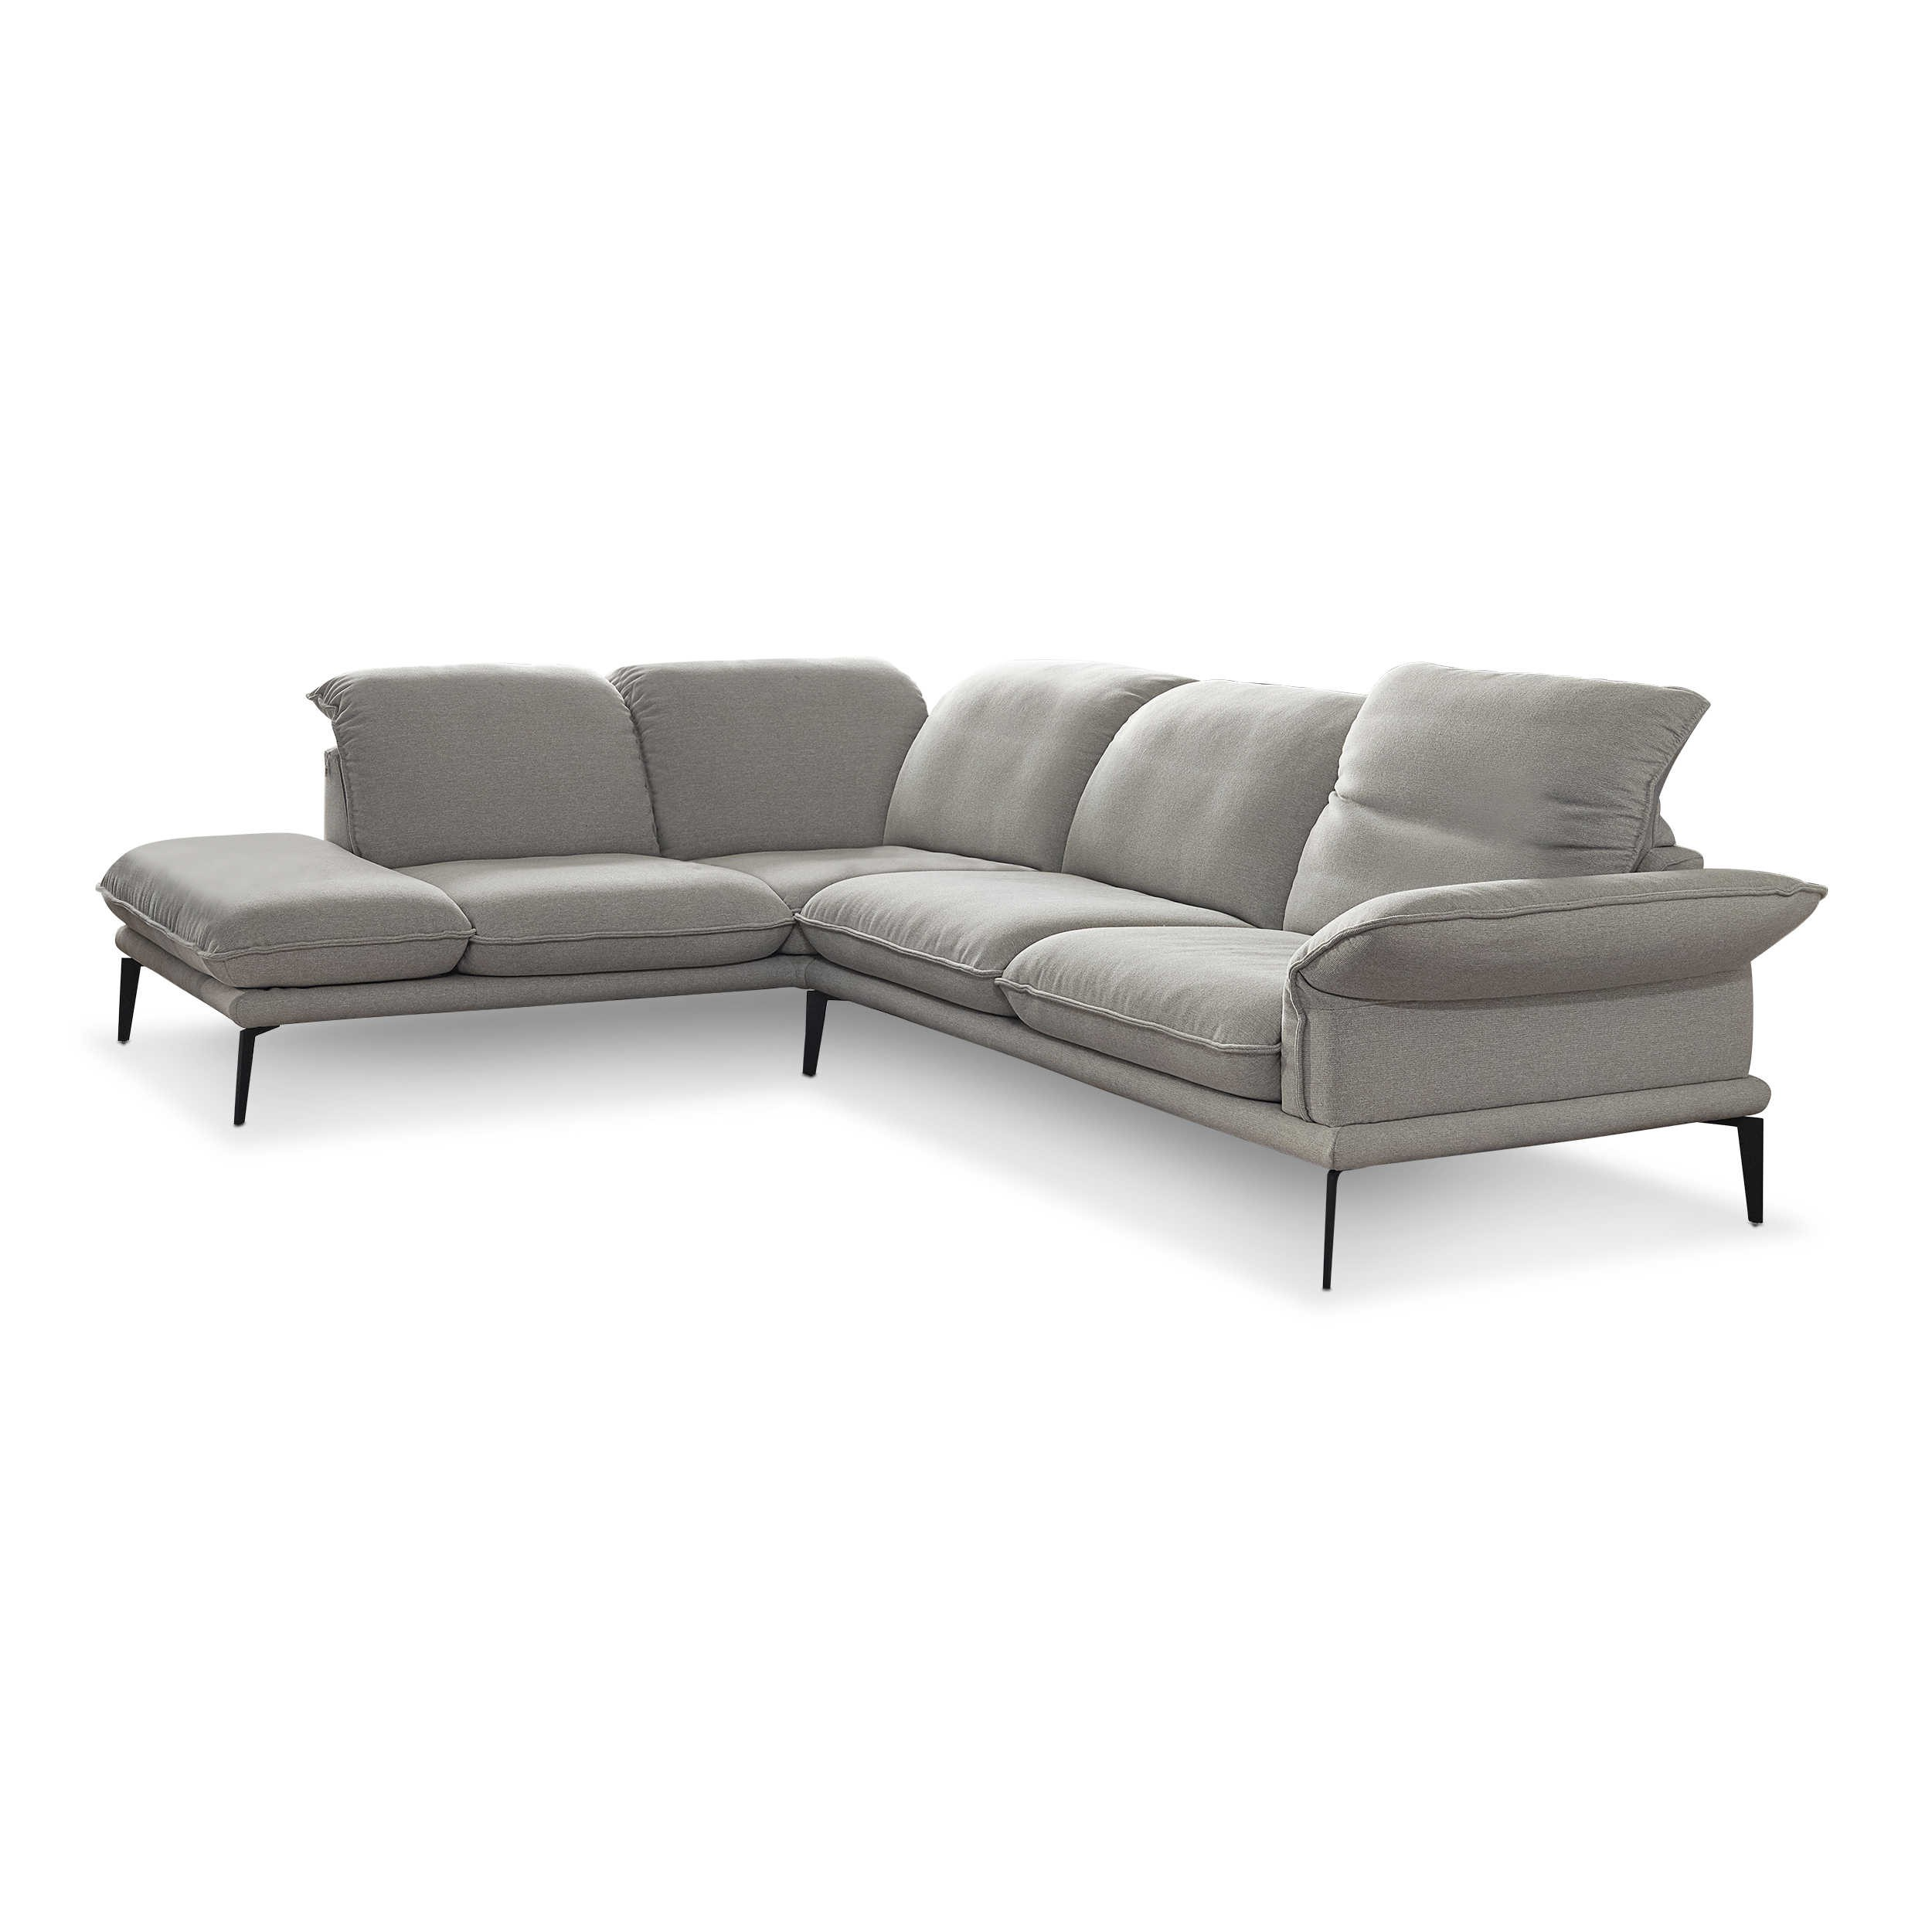 willi schillig ecksofa 24600 sherry silber stoff online. Black Bedroom Furniture Sets. Home Design Ideas